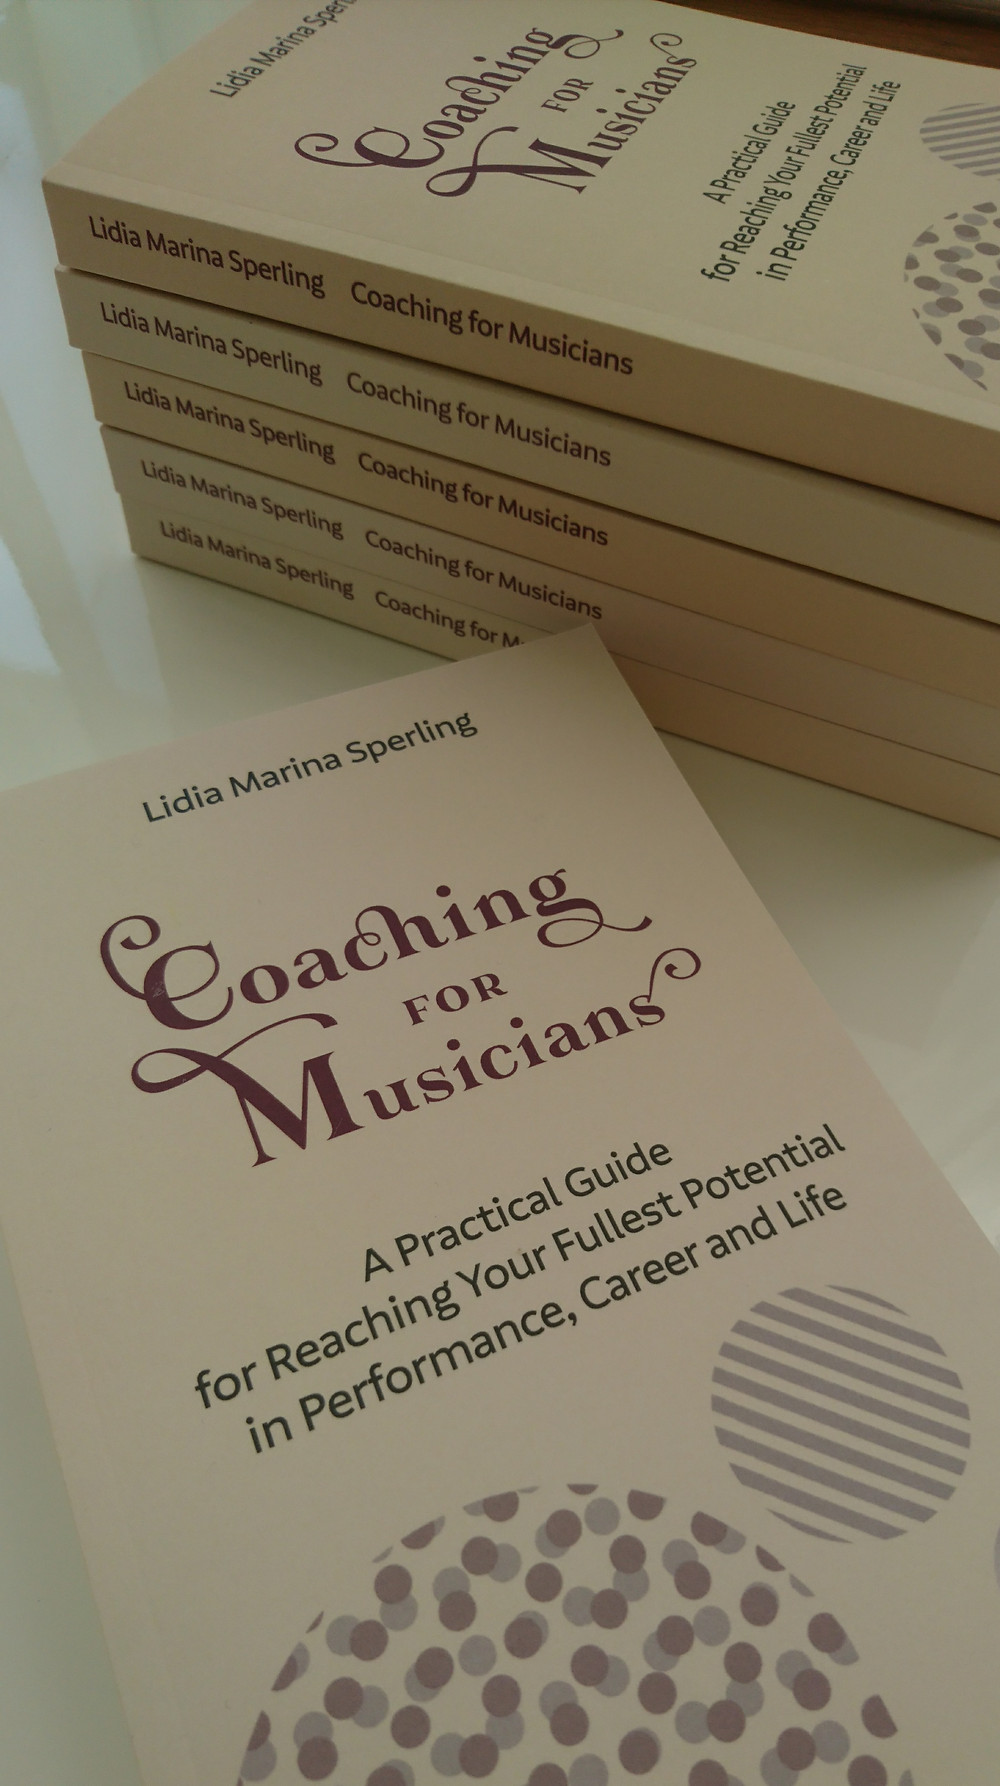 Book 'Coaching for Musicians'